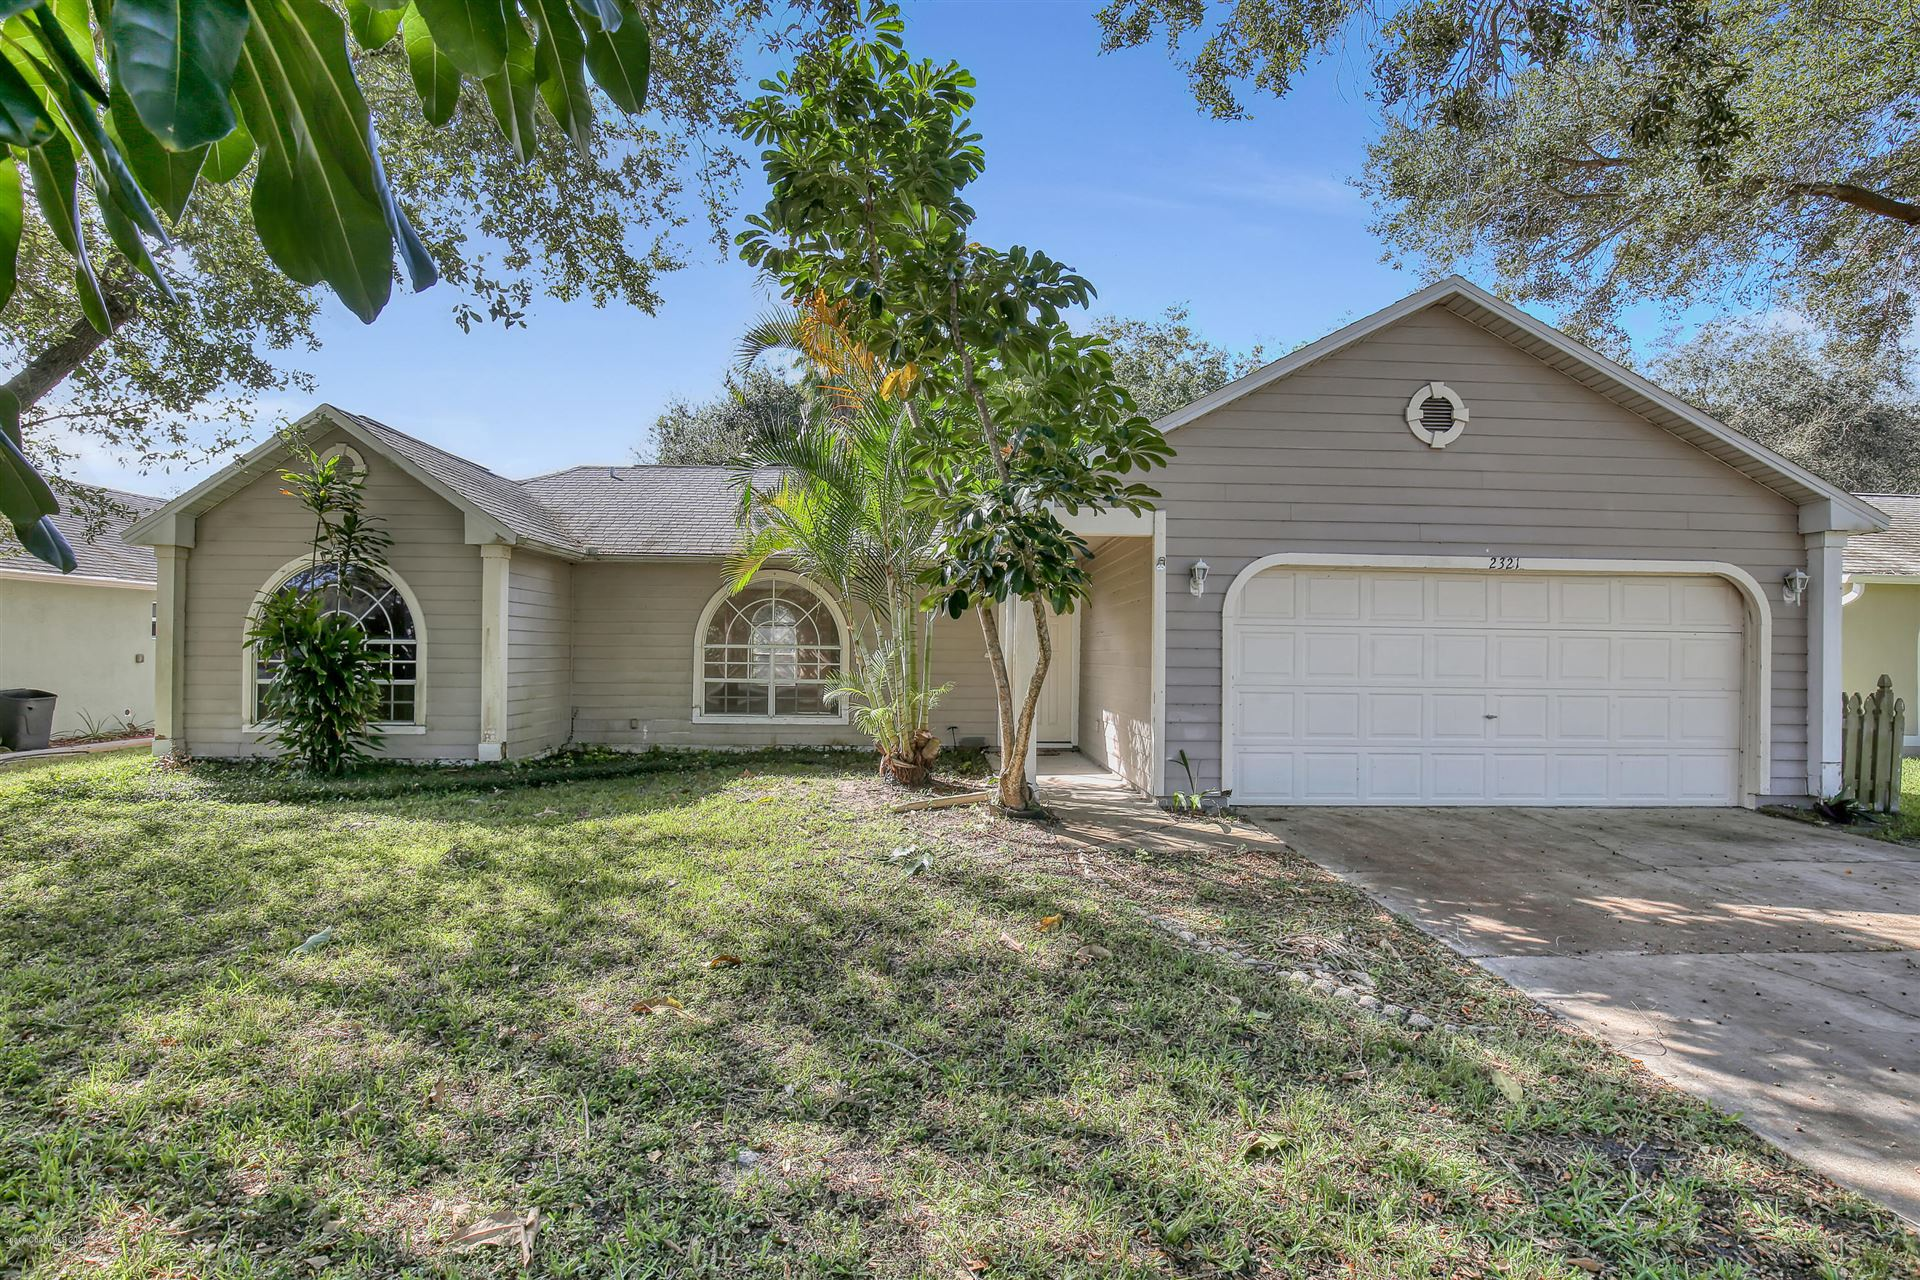 2321 Royal Poinciana Boulevard, Melbourne, FL 32935 - #: 891126